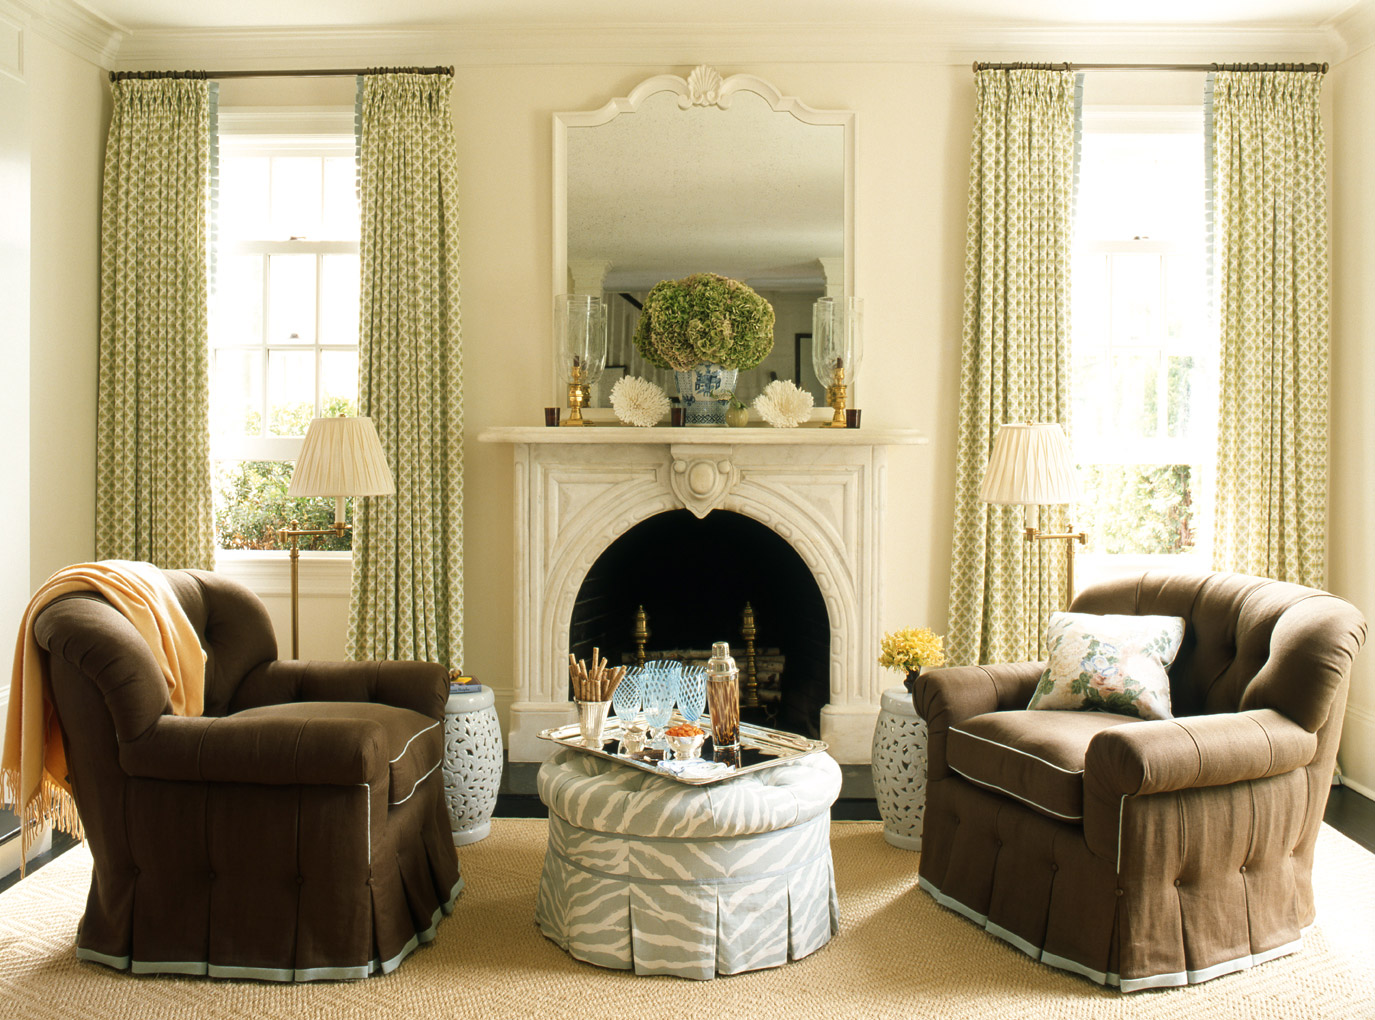 Living Room Decorating Style how to decorate series finding your decorating style home traditional living room example